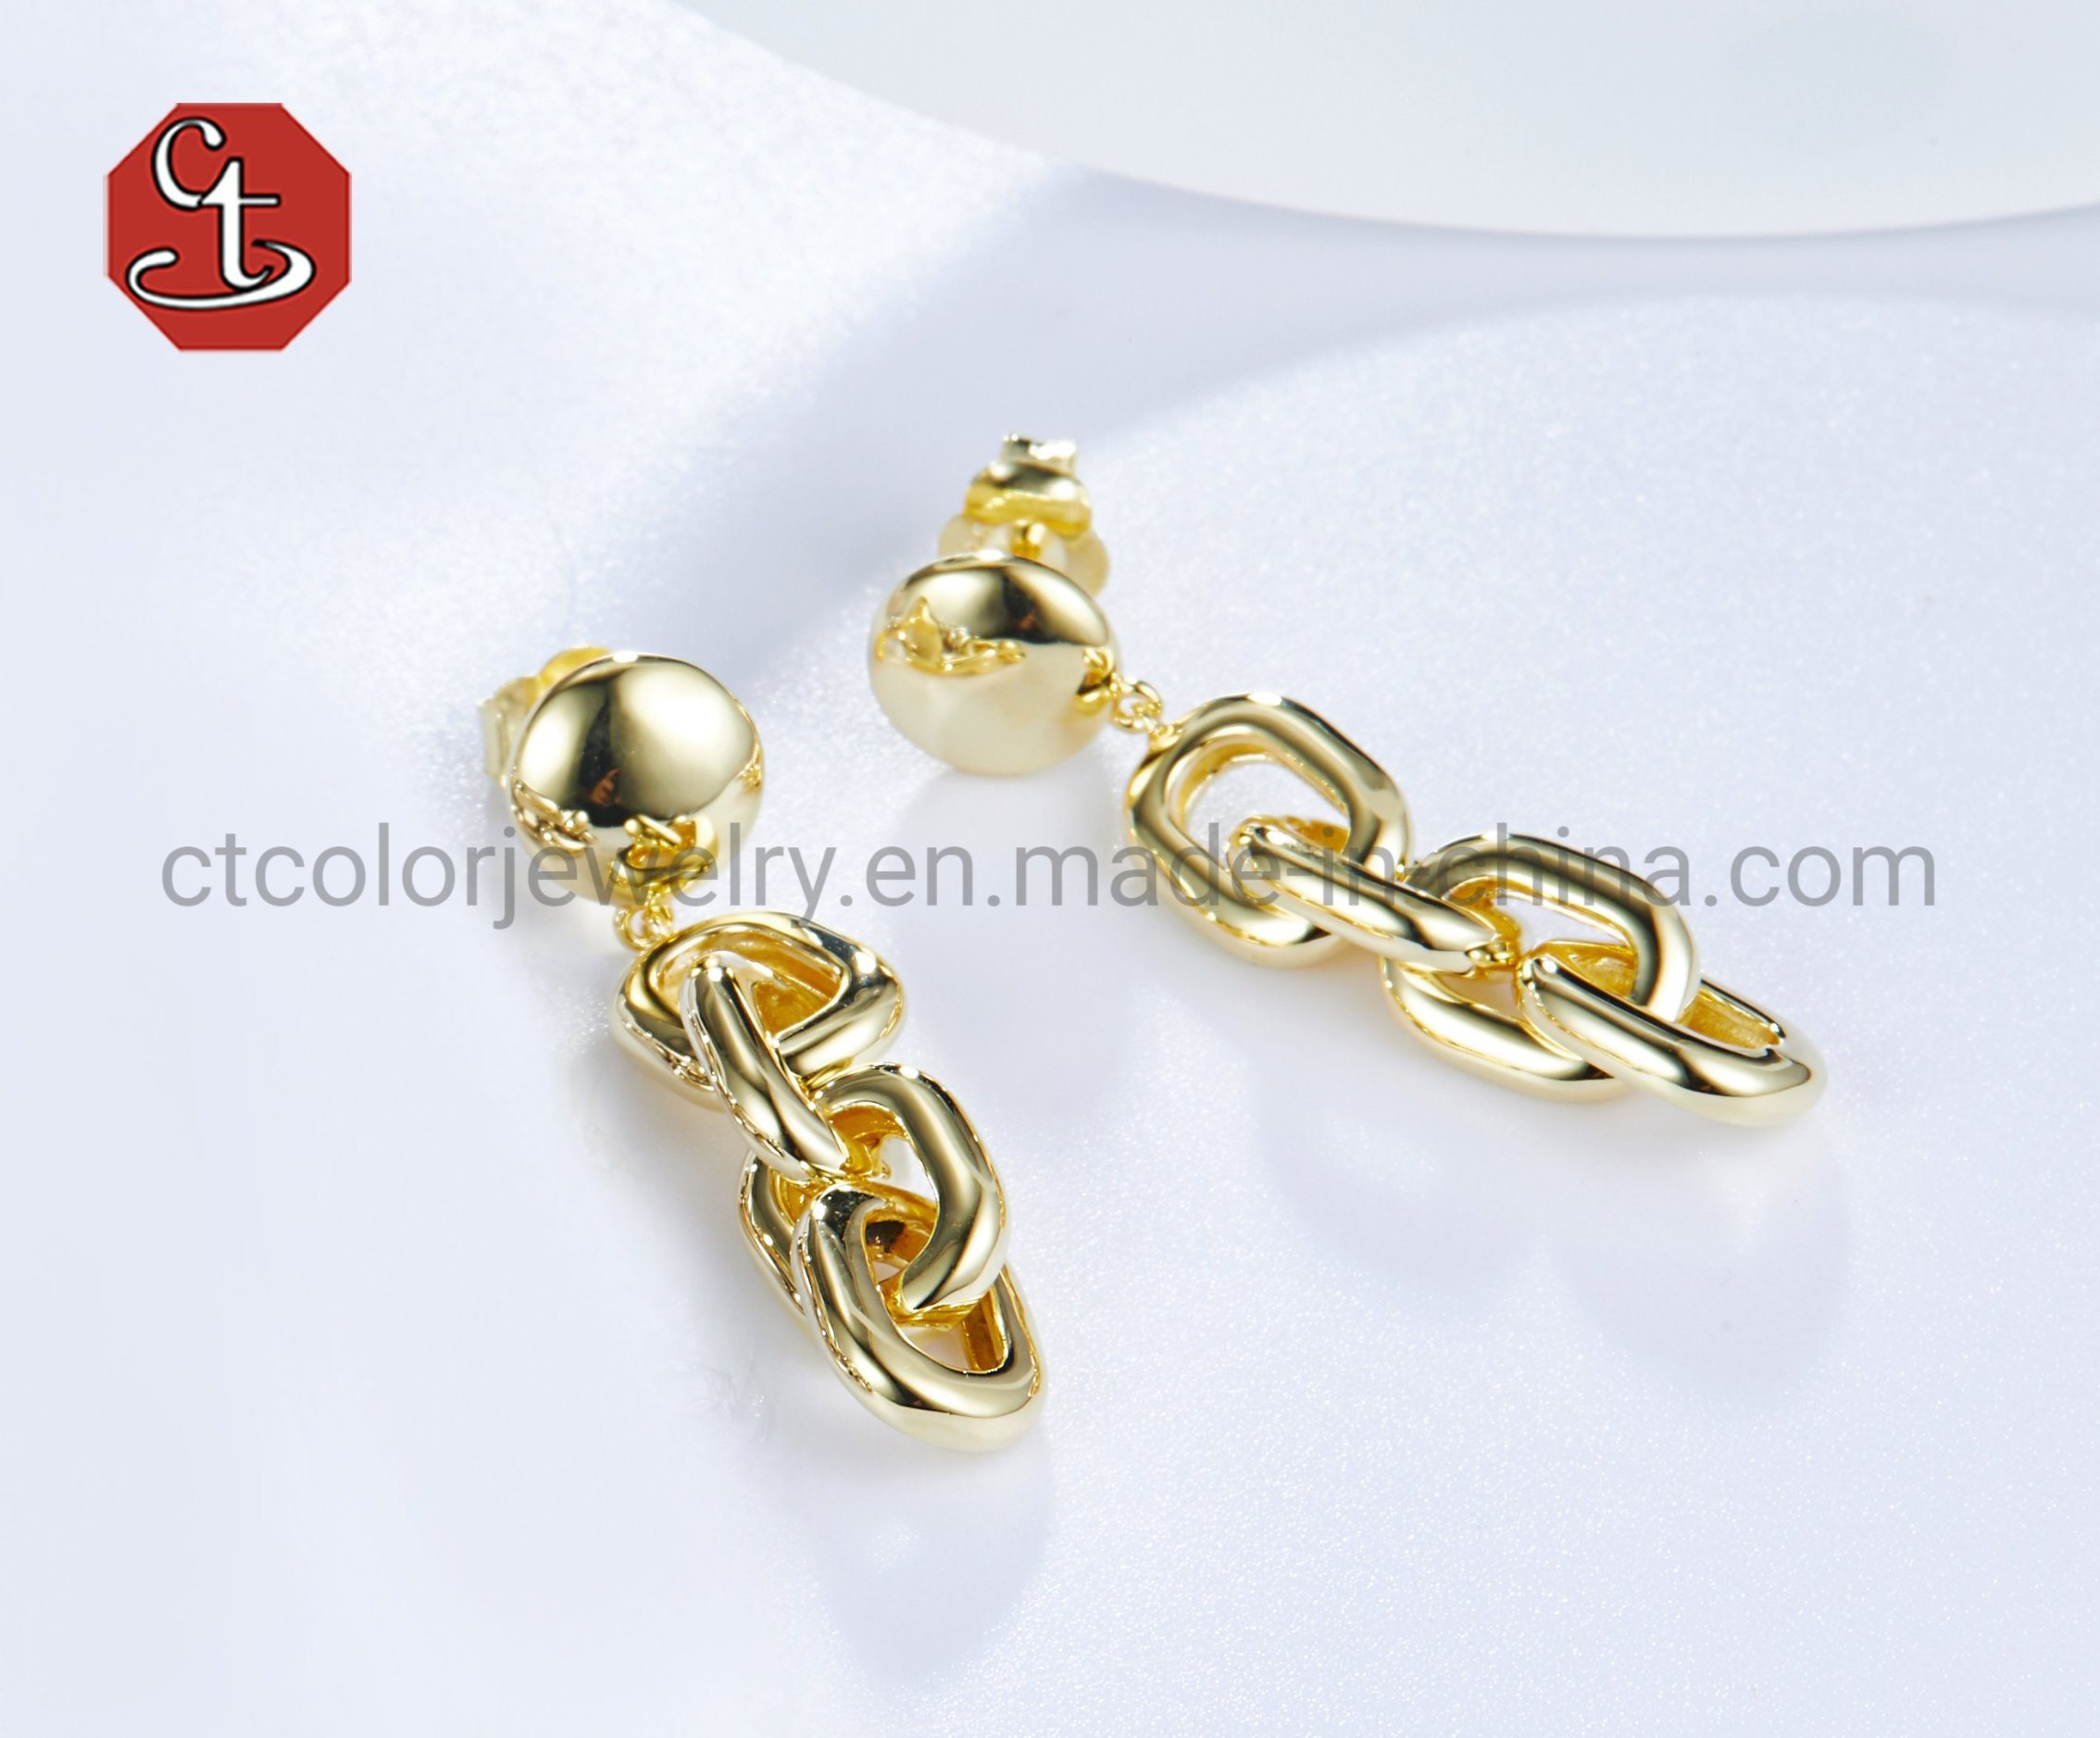 Wholesale Customized Jewelry, Wholesale Customized Jewelry Manufacturers &  Suppliers   Made-in-China.com